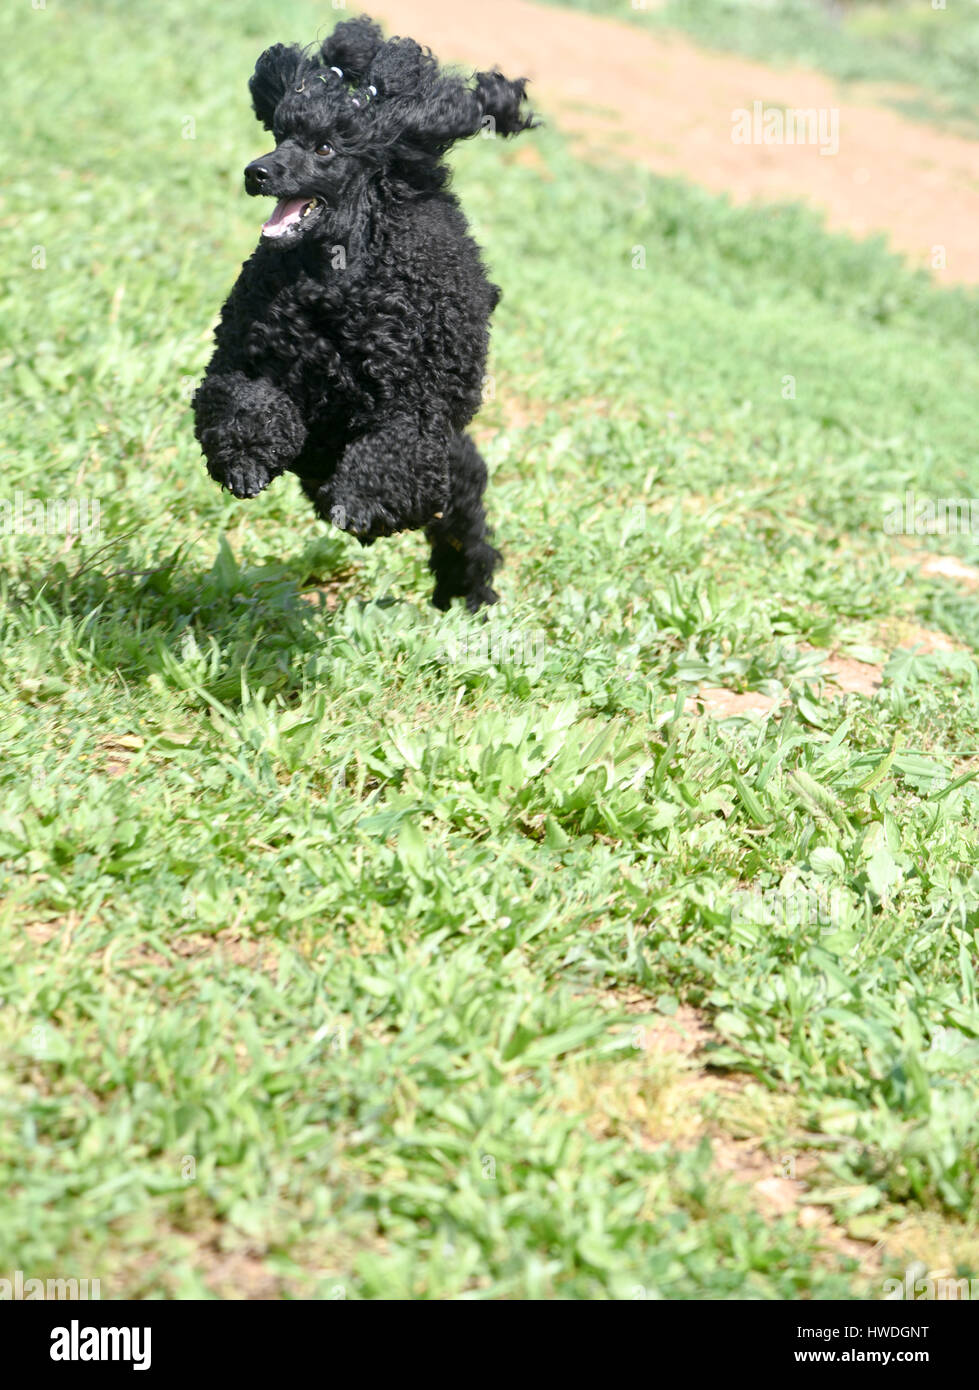 Playful Black Miniature Poodle running on the grass outside - Stock Image